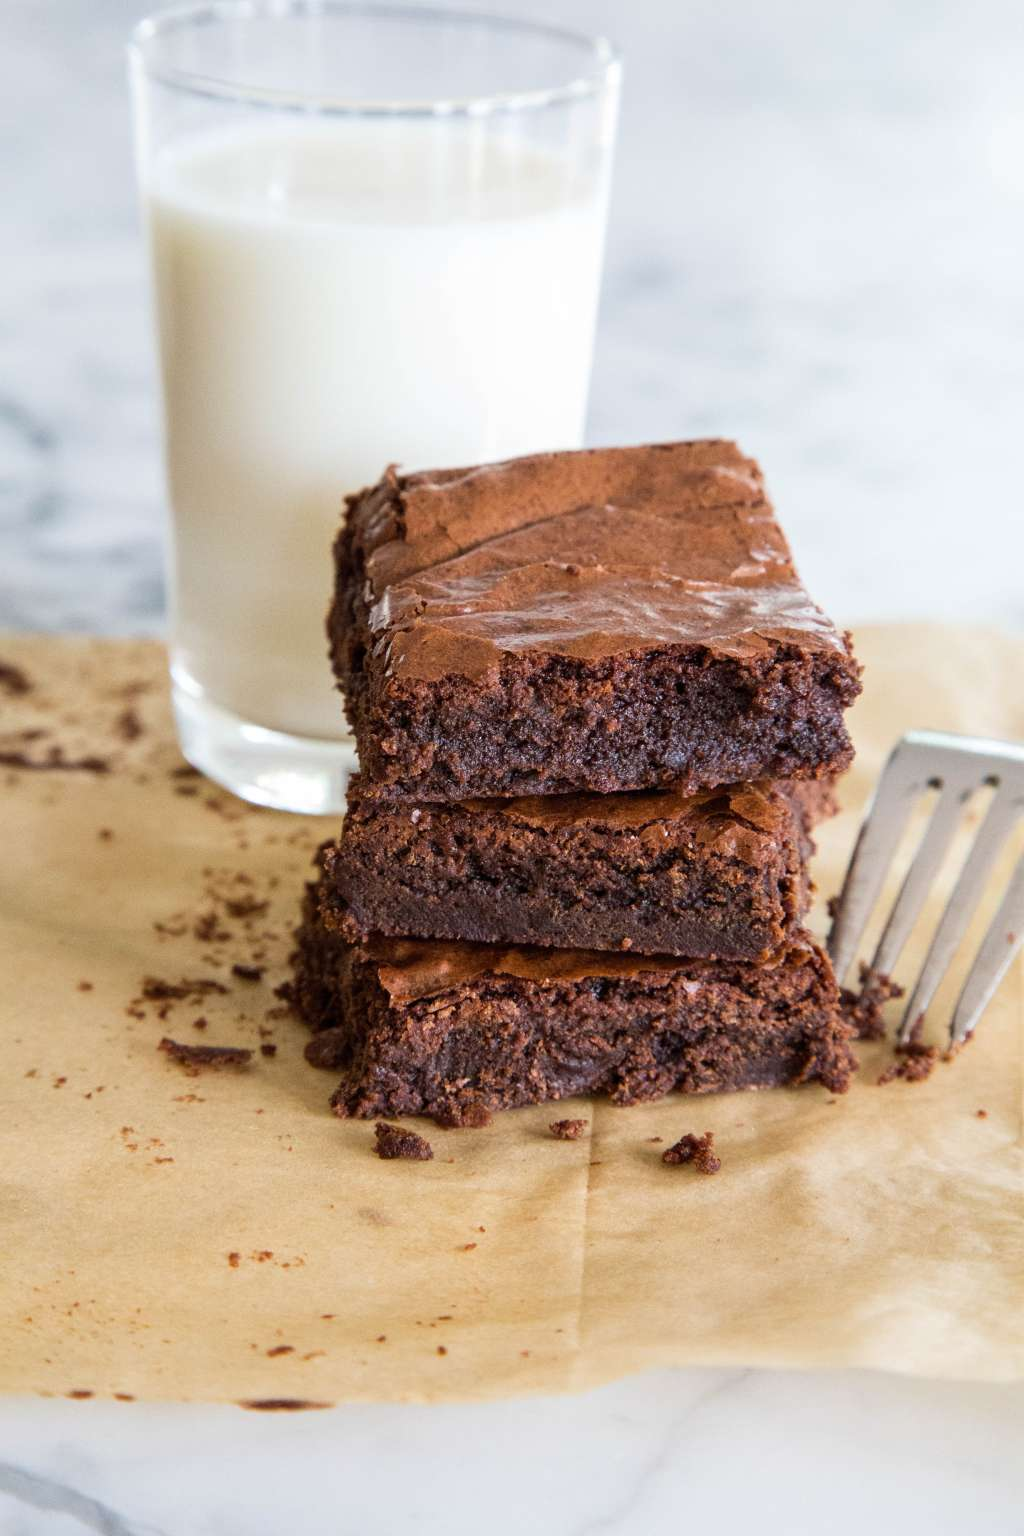 I Tried the Popular Hack for Richer, Chewier Brownies